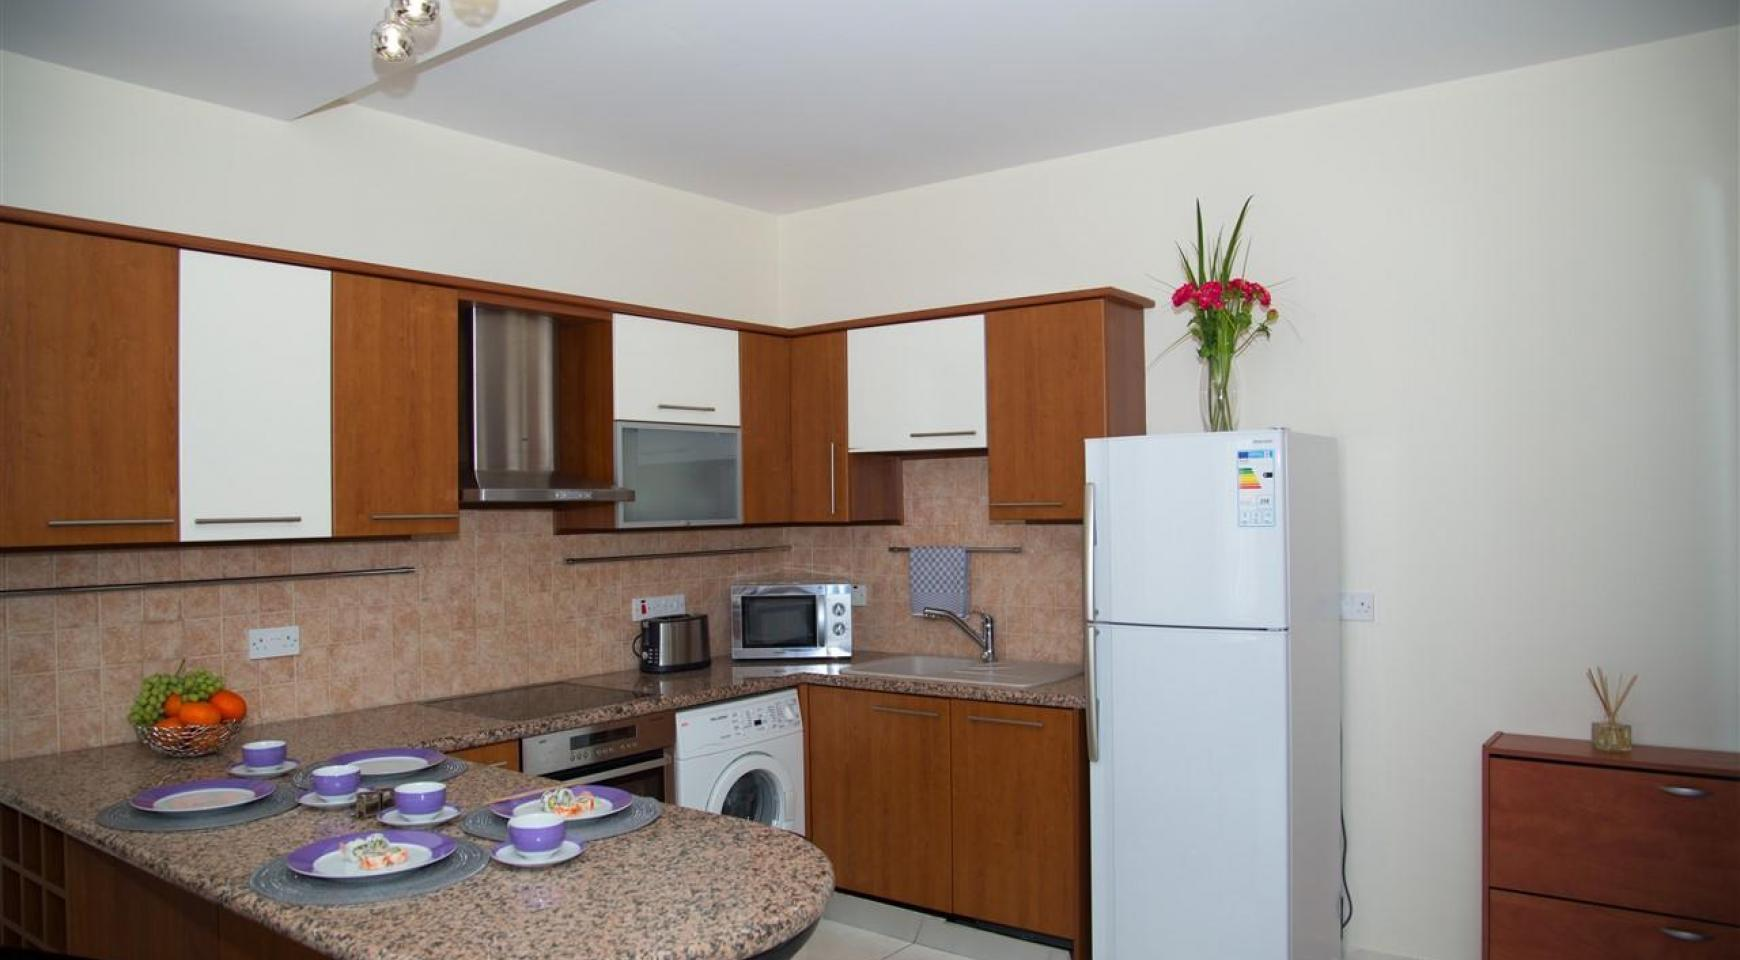 2 Bedroom Apartment Mesogios Iris 304 in the Complex near the Sea - 11